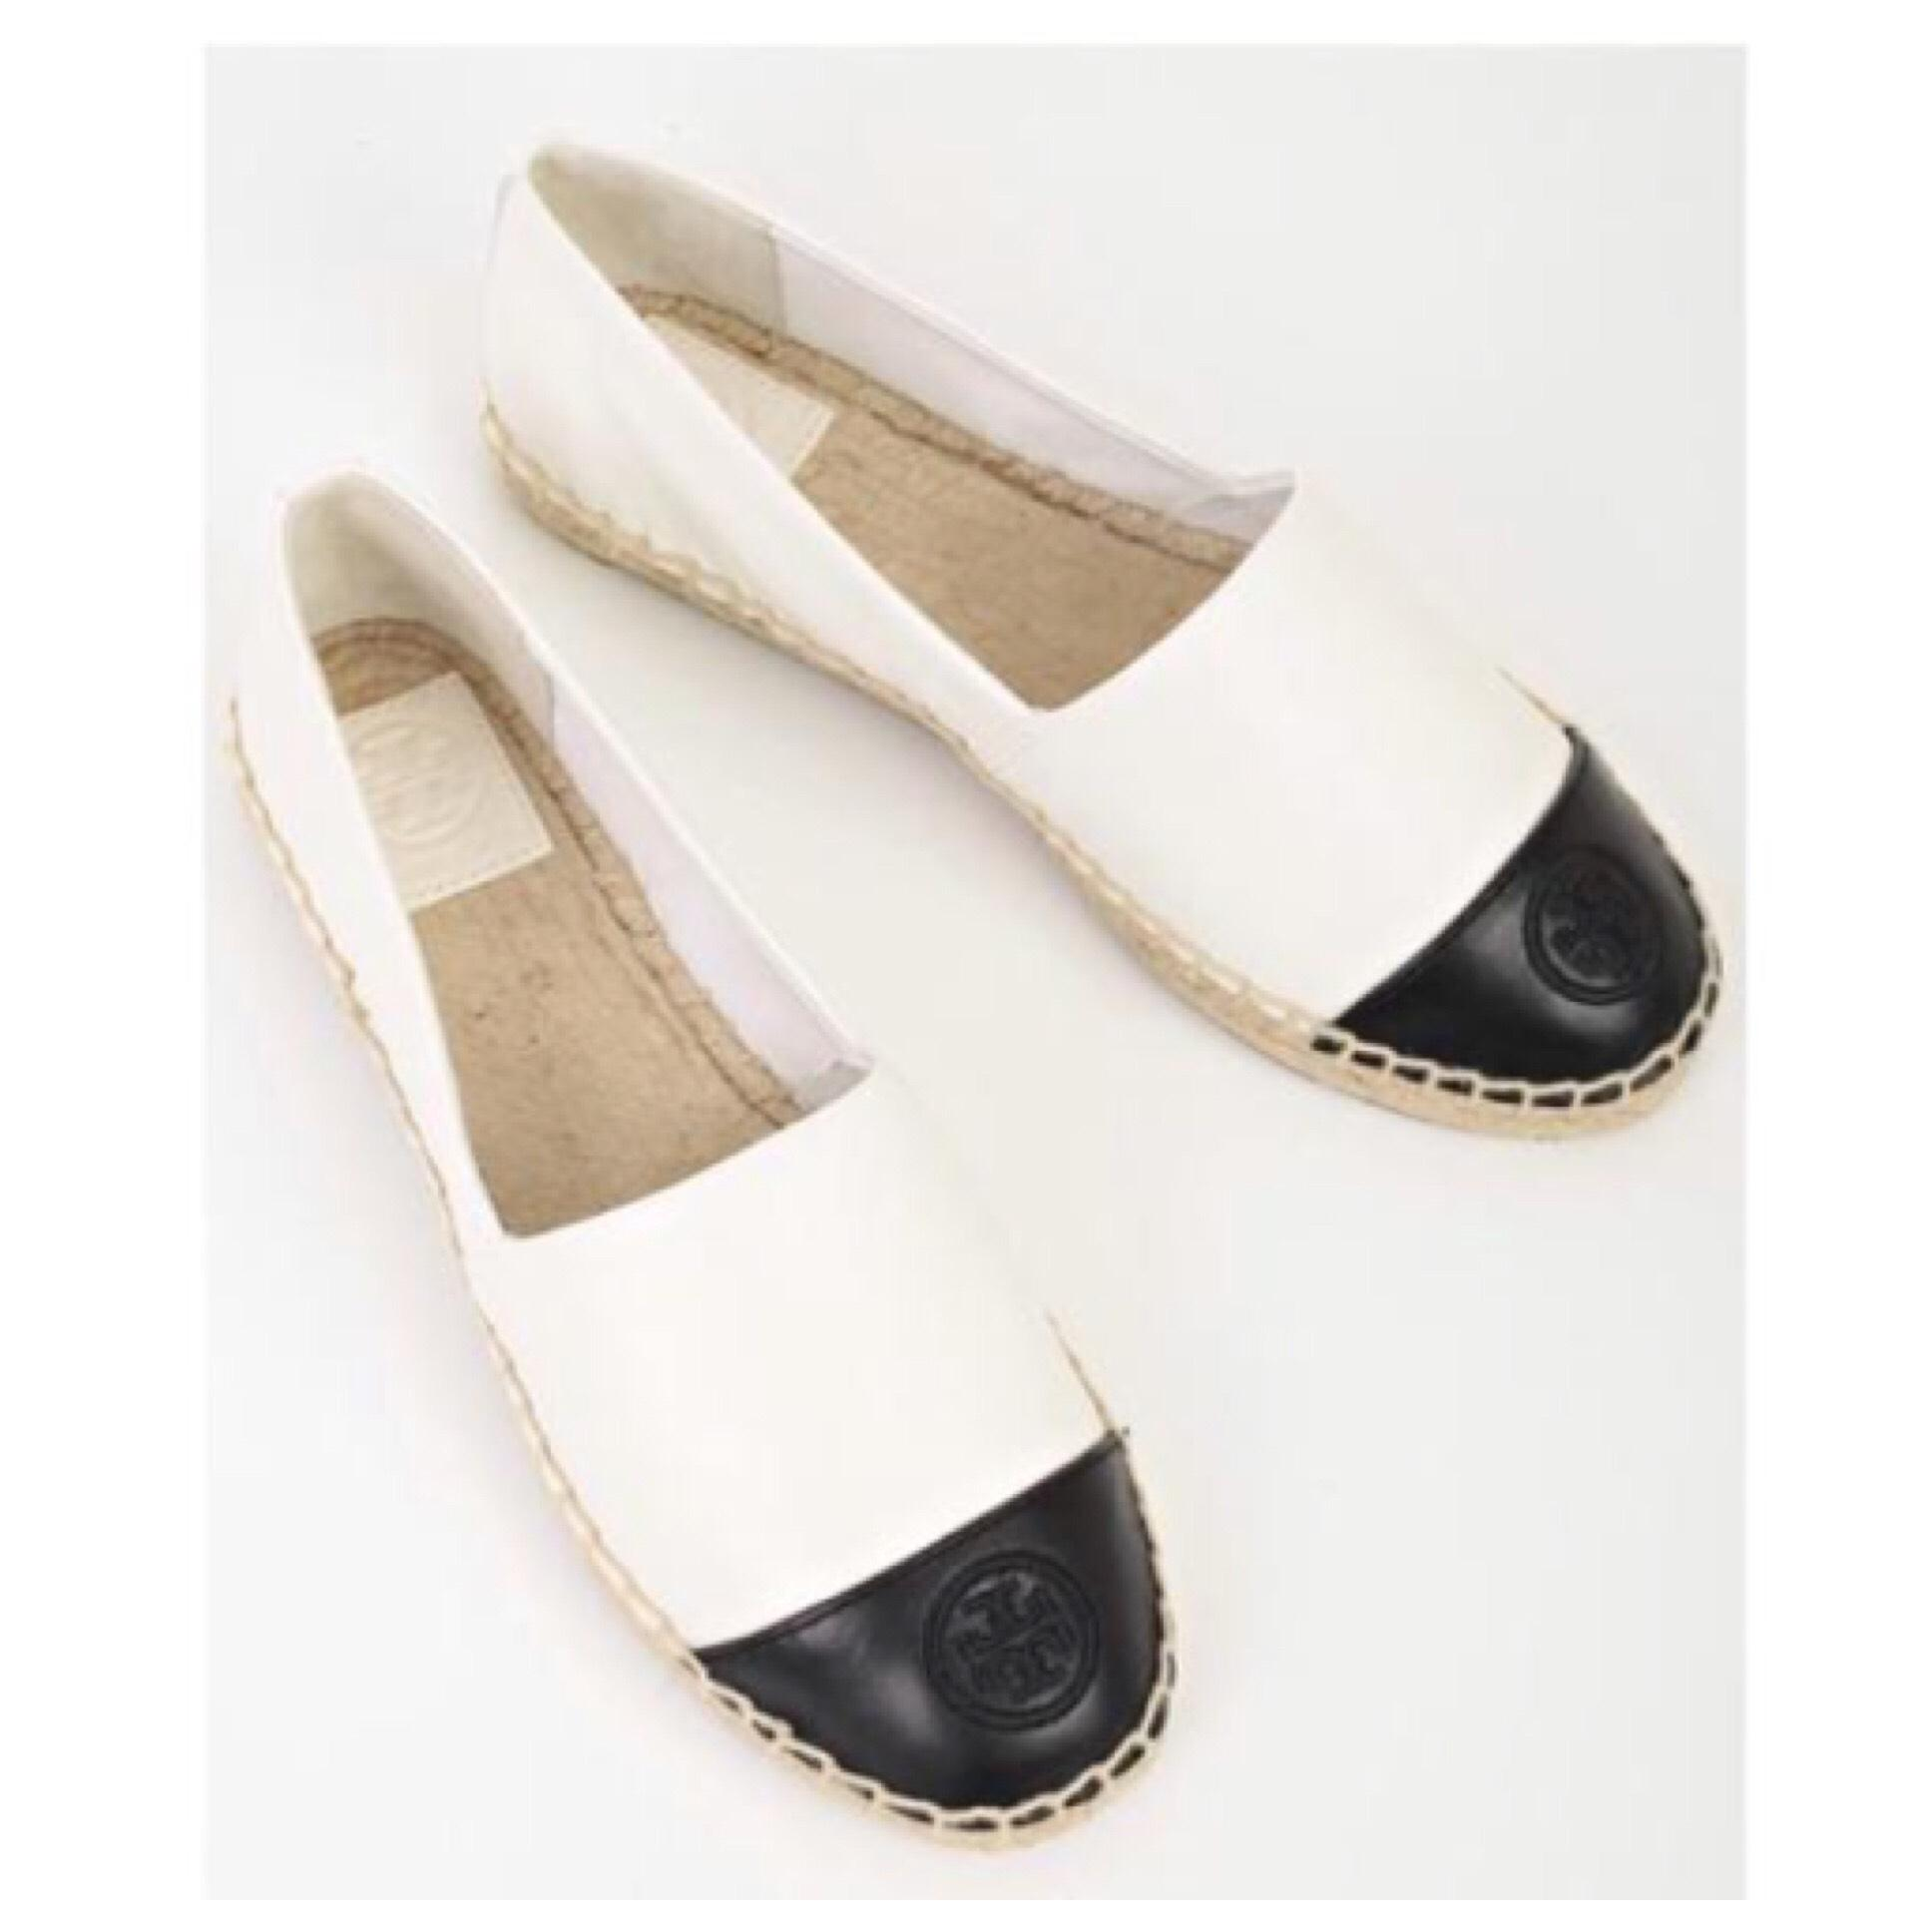 e67363f7aa2 Tory Burch Leather Ivory Black Colorblock Espadrilles Leather Burch Flats  Size US 10.5 Regular (M